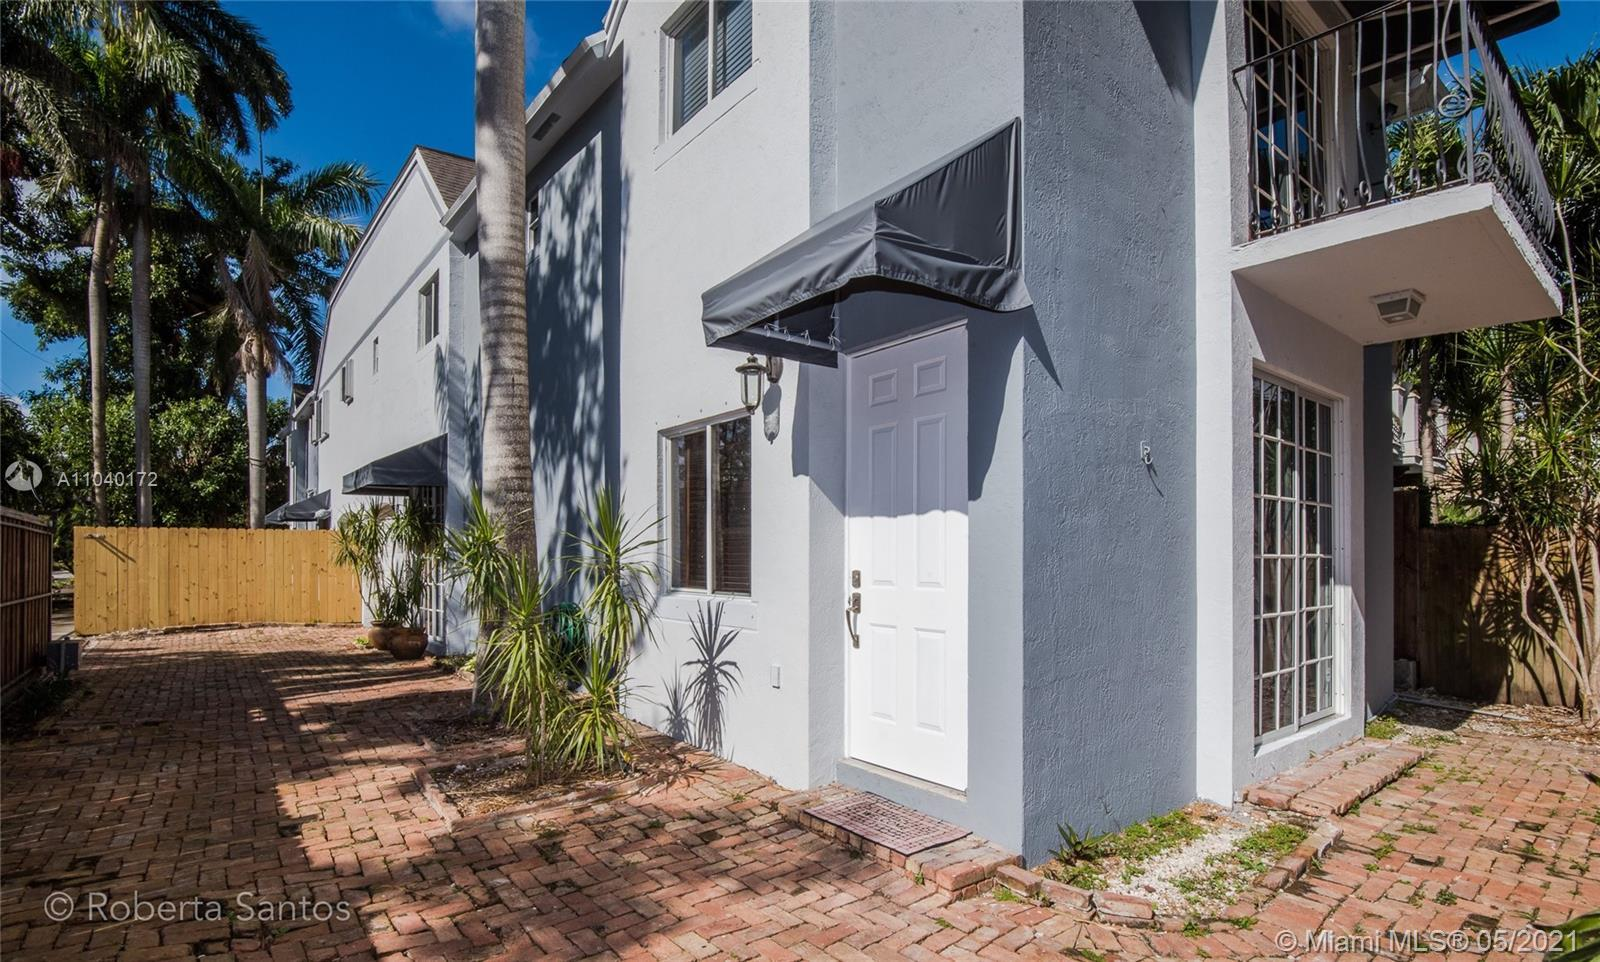 Lovely 3 bedroom townhouse with split floor plan on the second floor. Remodeled kitchen with stailes